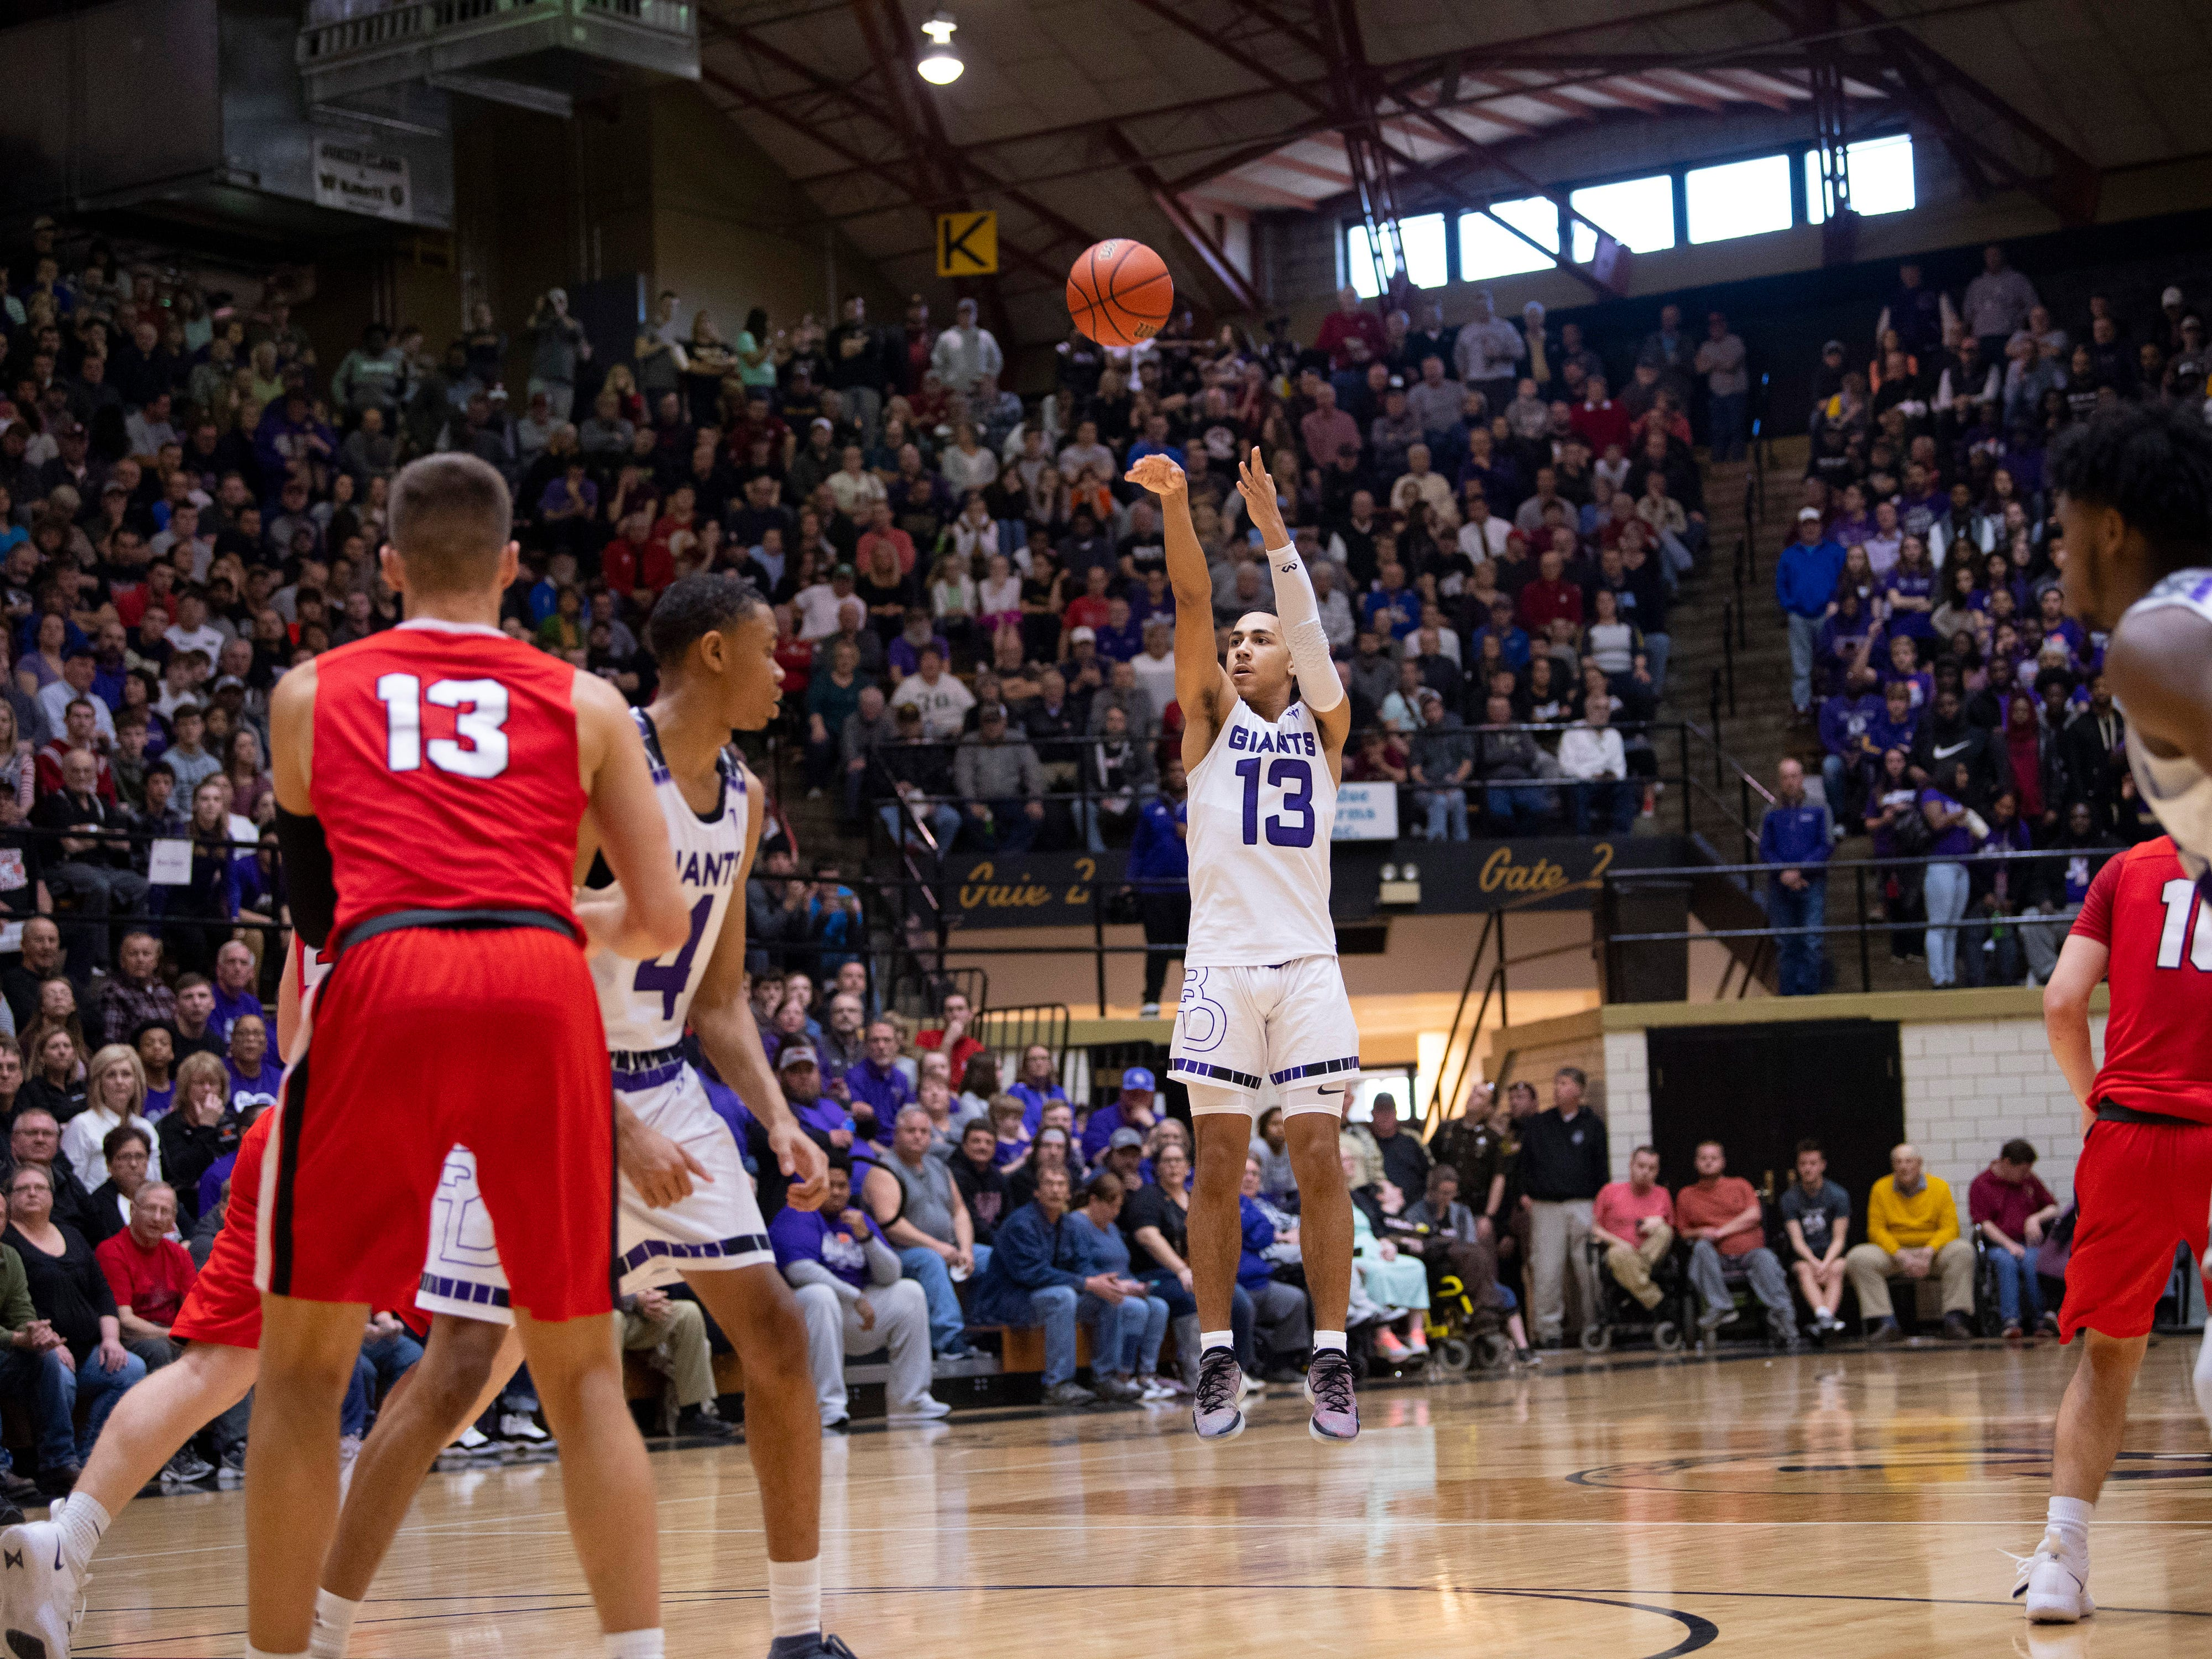 Ben Davis's Kai Hickman-Steinman (13) puts up a three-pointer against Center grove during the 4A Boys Indiana Semi-State Basketball Tournament at the Hatchet House in Washington, Ind., Saturday afternoon.